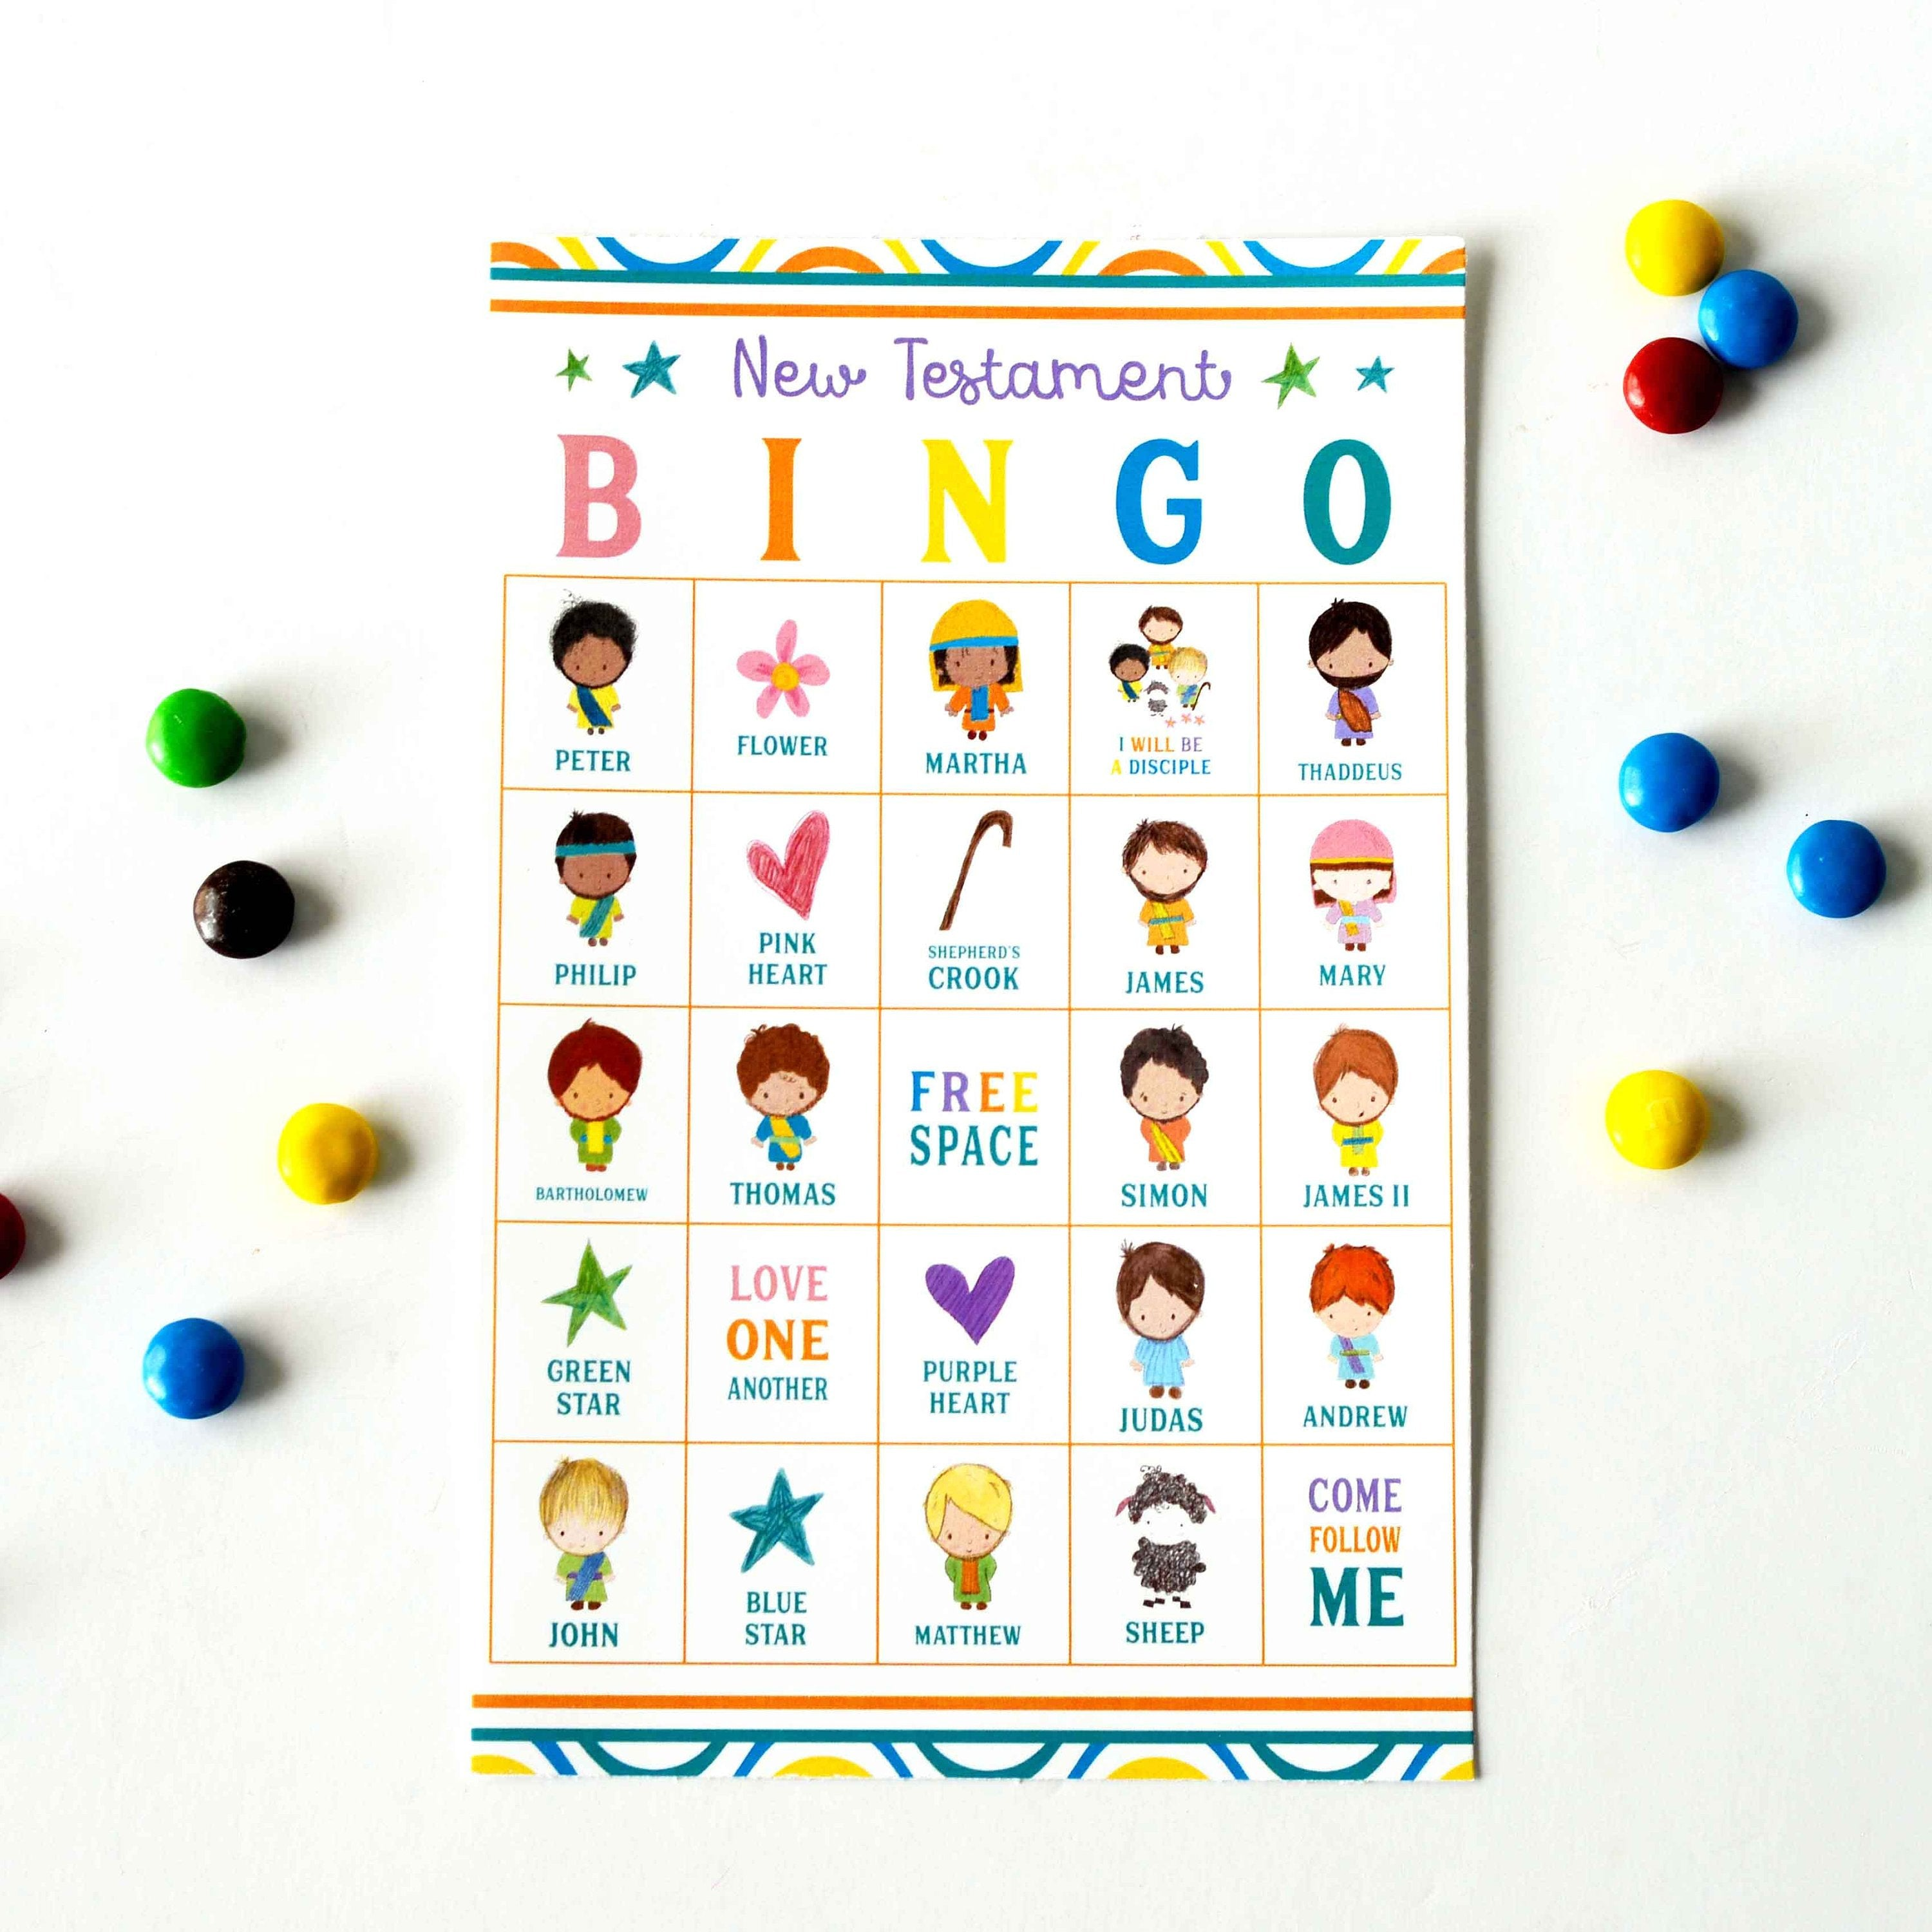 image regarding Bible Bingo Printable titled Fresh new Testomony BINGO Printable Activity Bible Recreation for Little ones